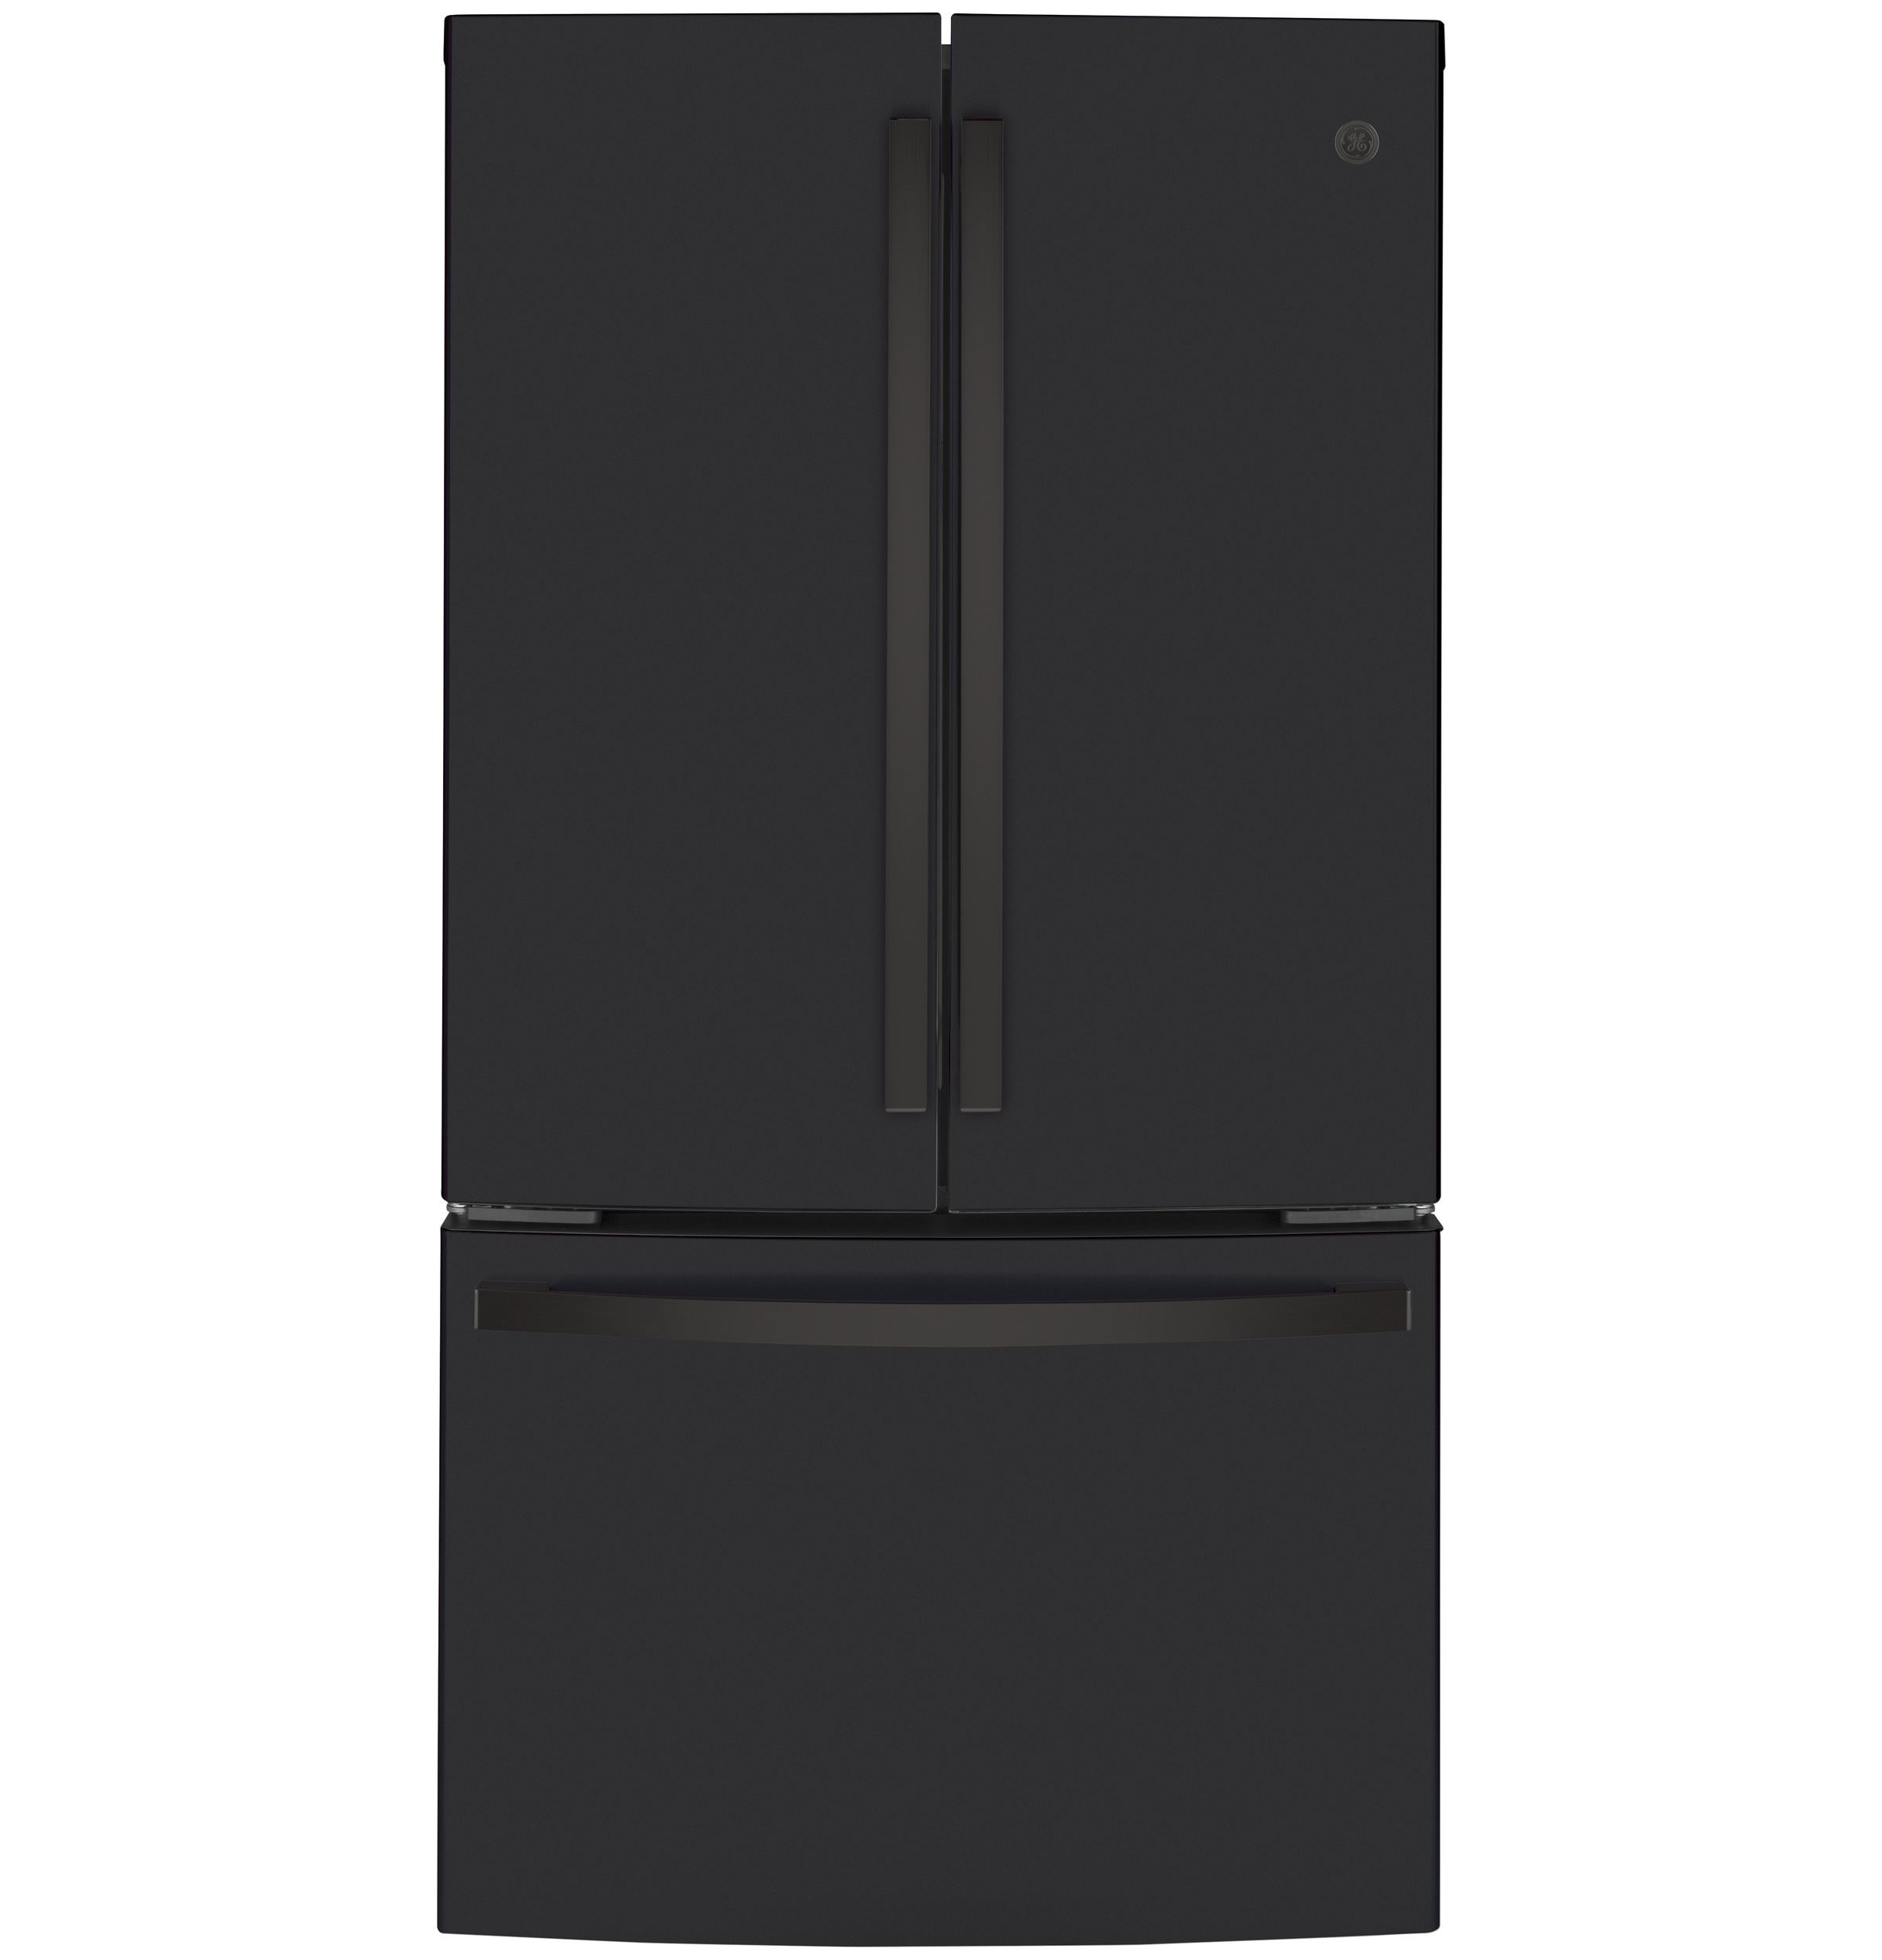 Model: GWE23GENDS | GE GE® ENERGY STAR® 23.1 Cu. Ft. Counter-Depth French-Door Refrigerator